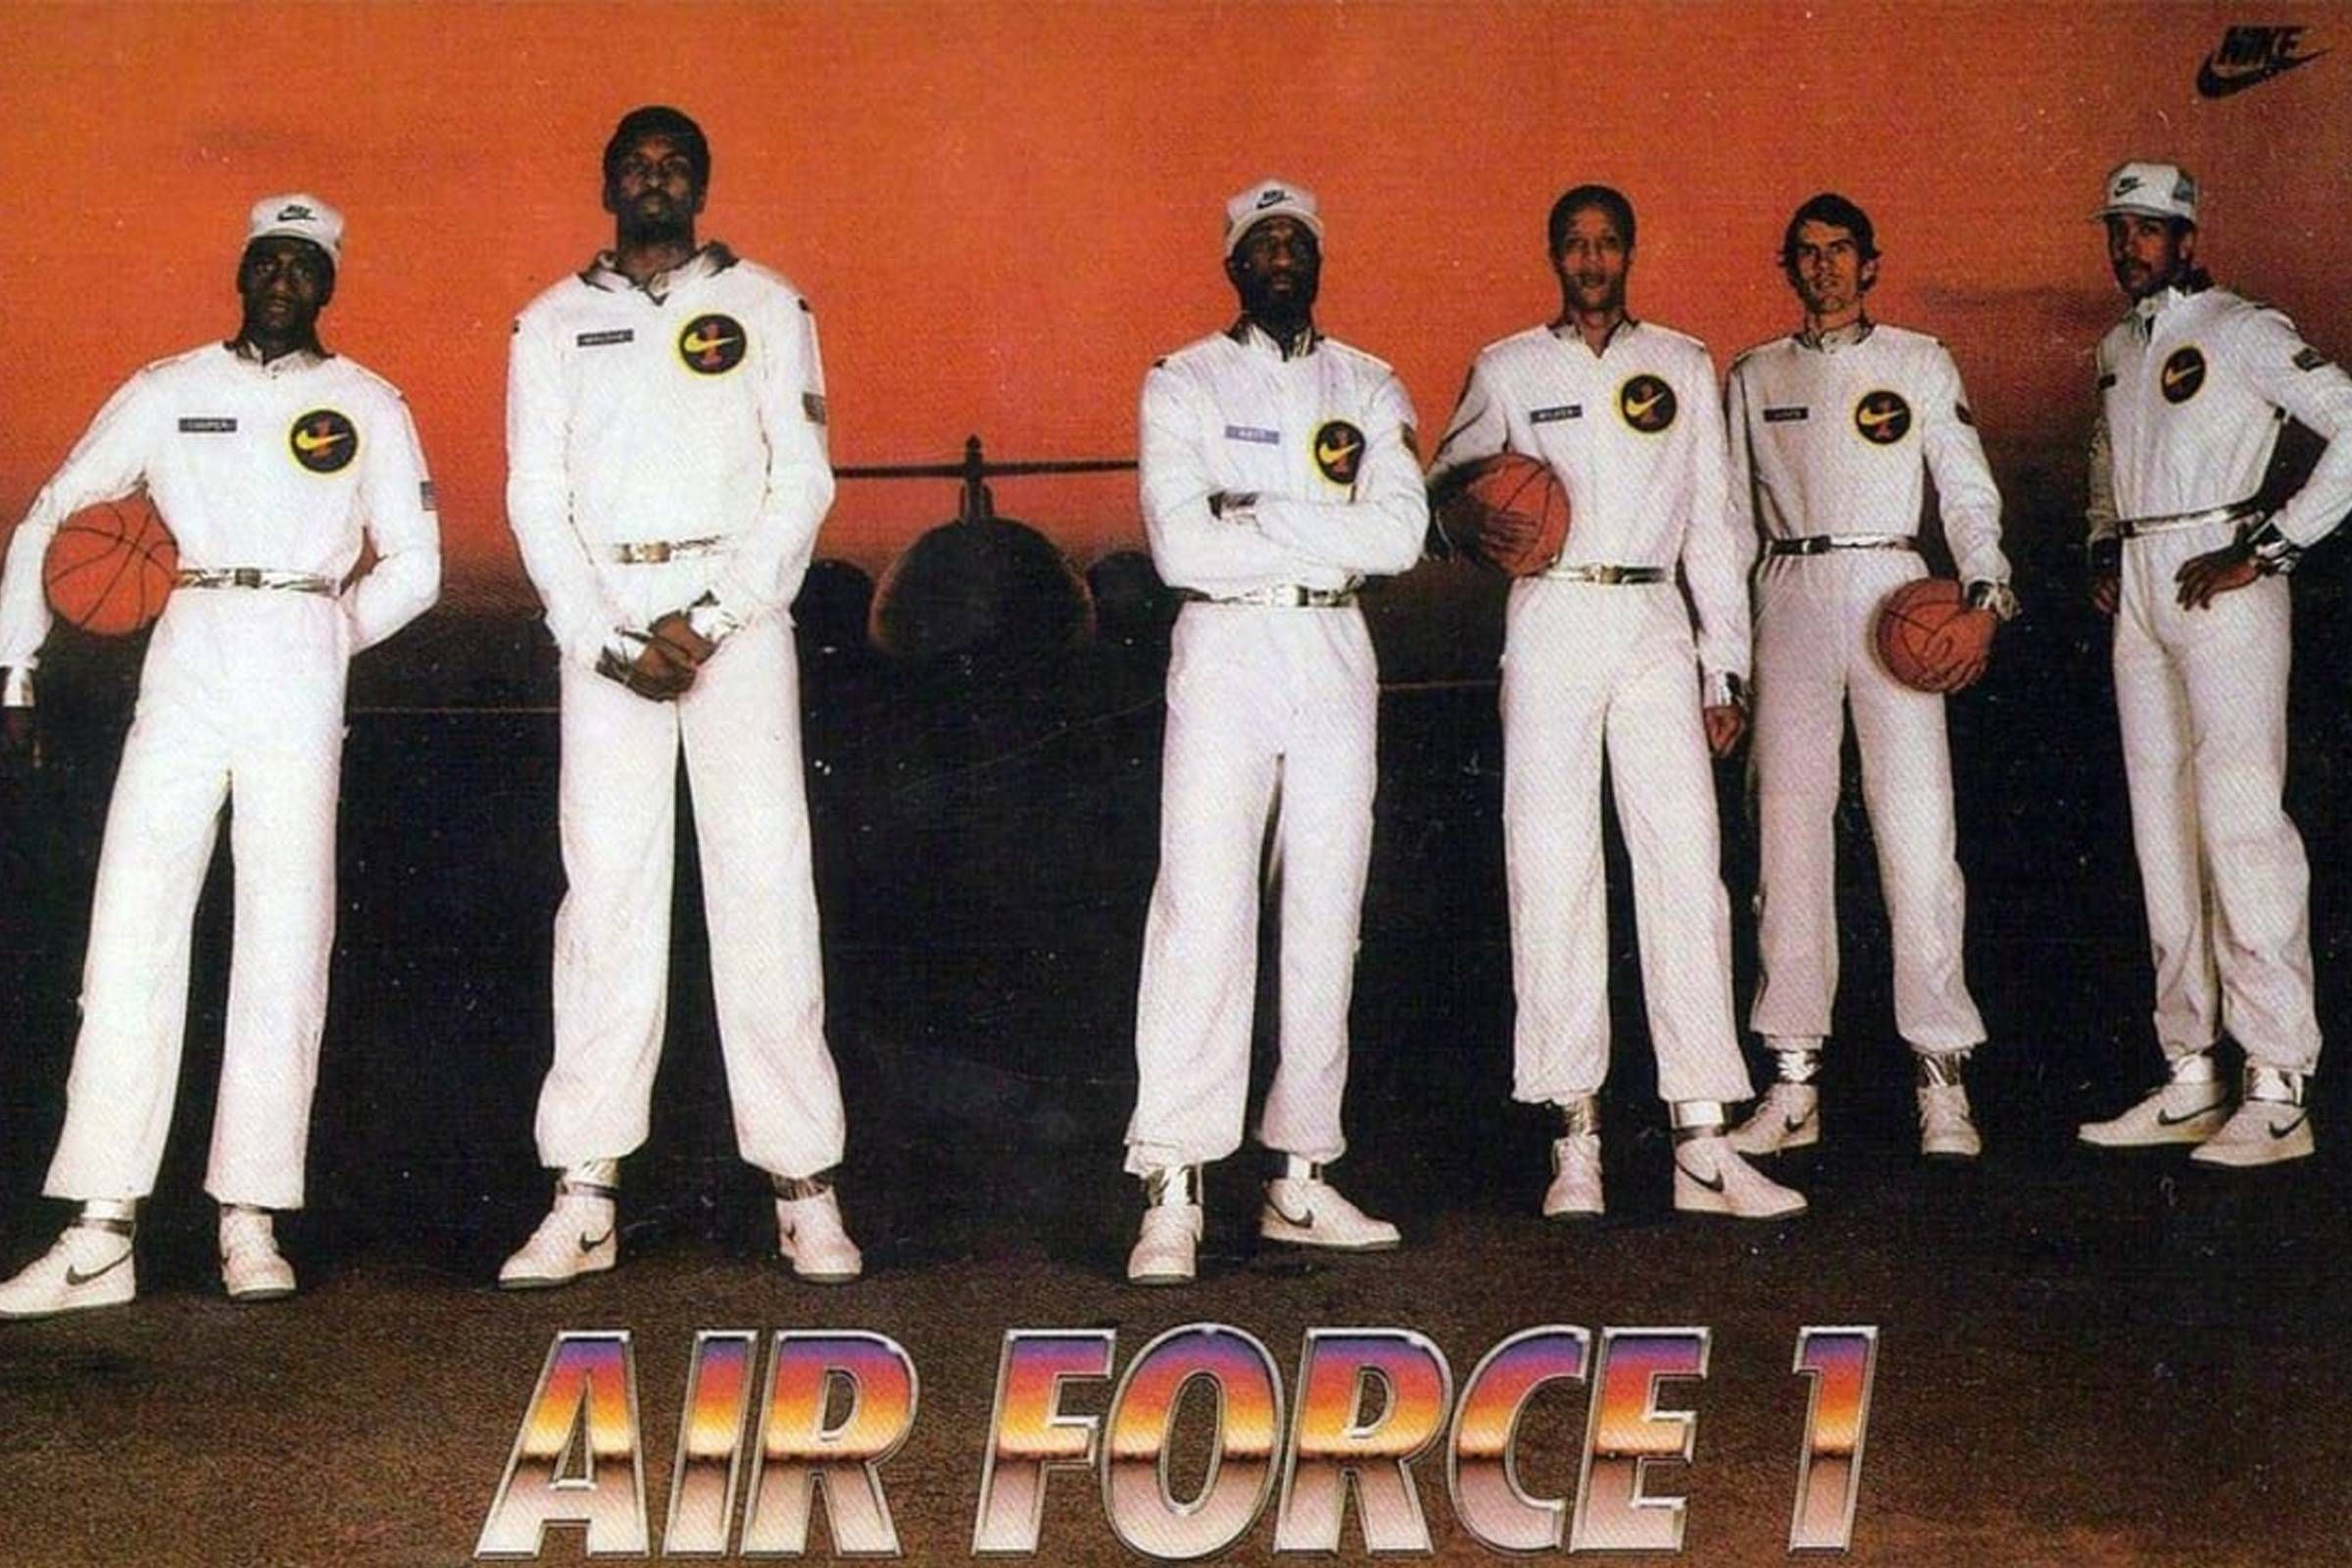 save off f90b9 51576 A Cultural Force  A History of the Air Force 1 - Air Force 1 History -  Grailed